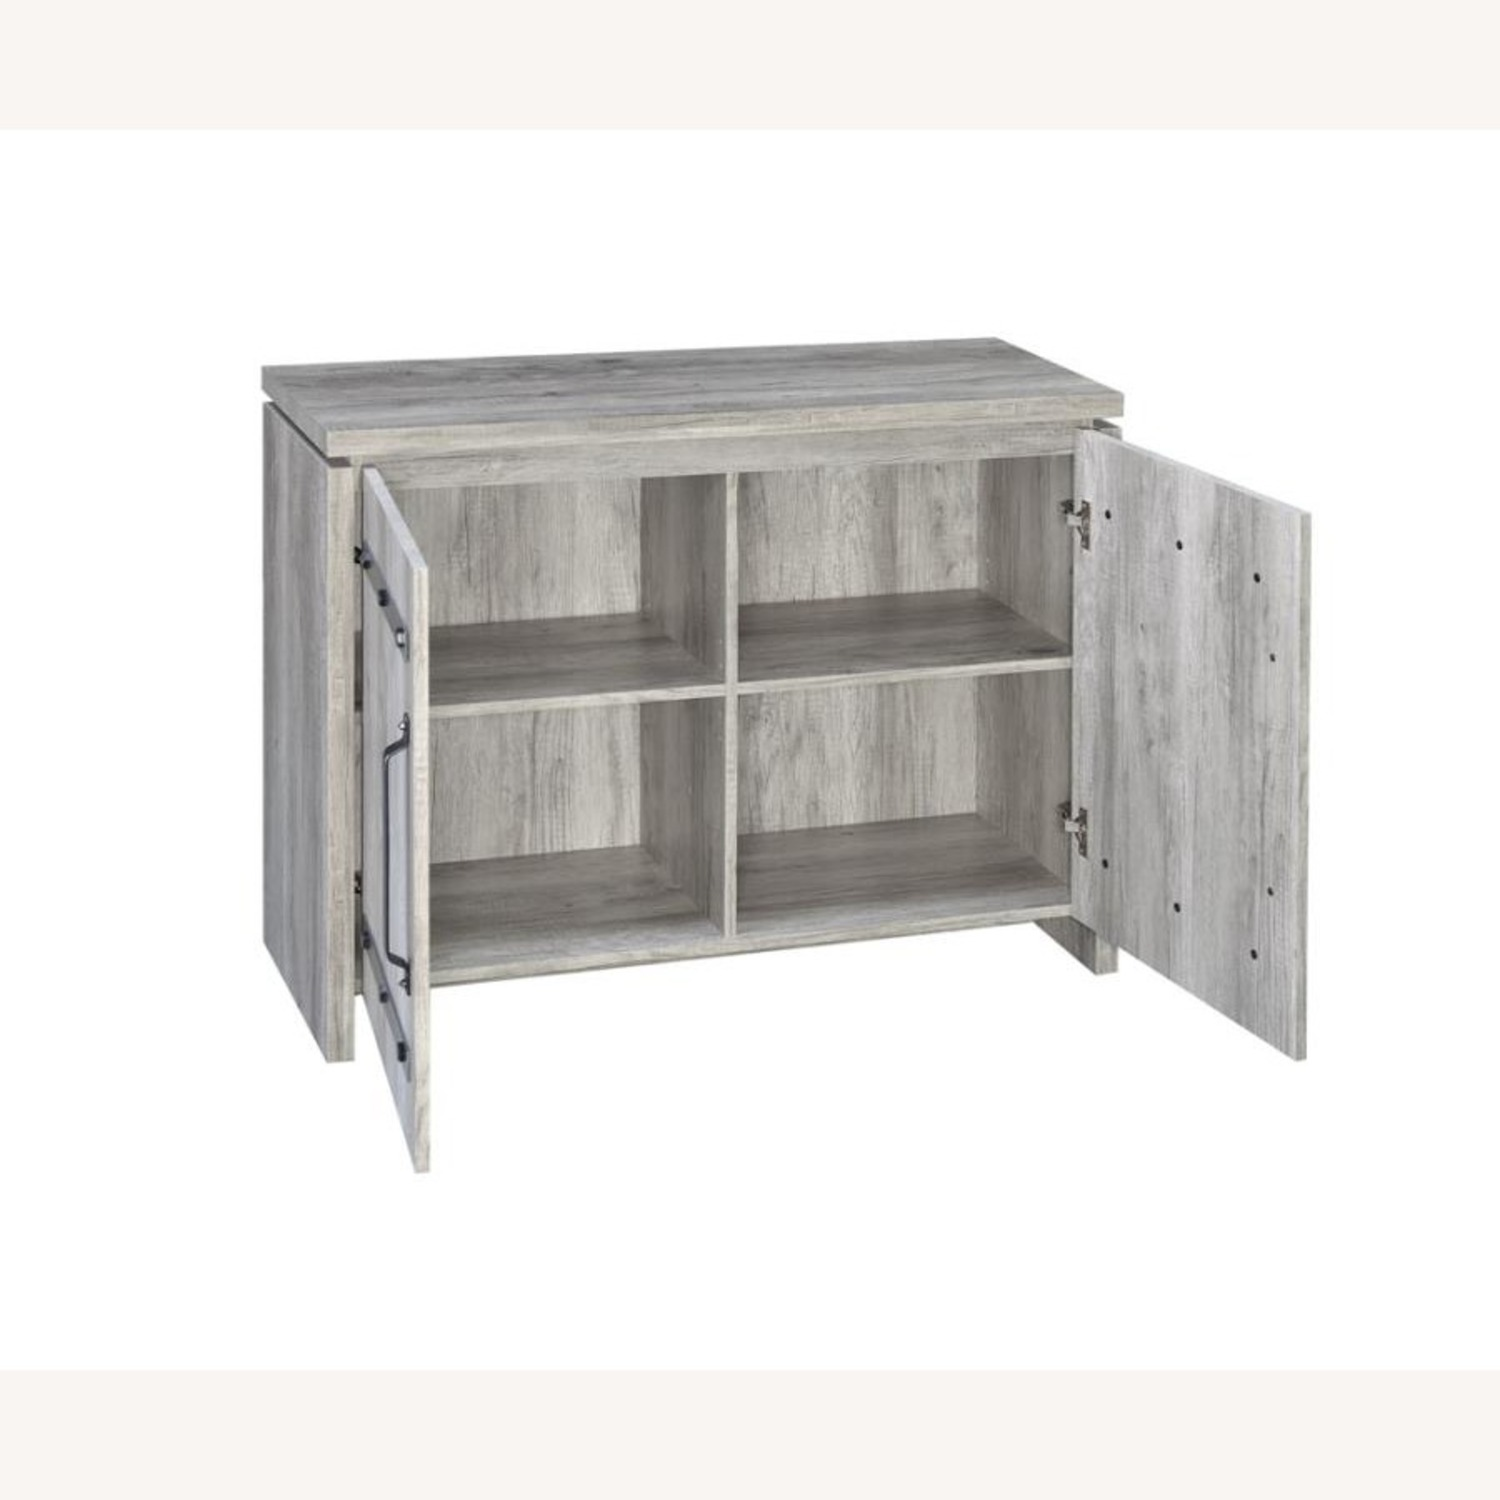 Accent Cabinet In Grey Driftwood W/ Rustic Metals - image-1